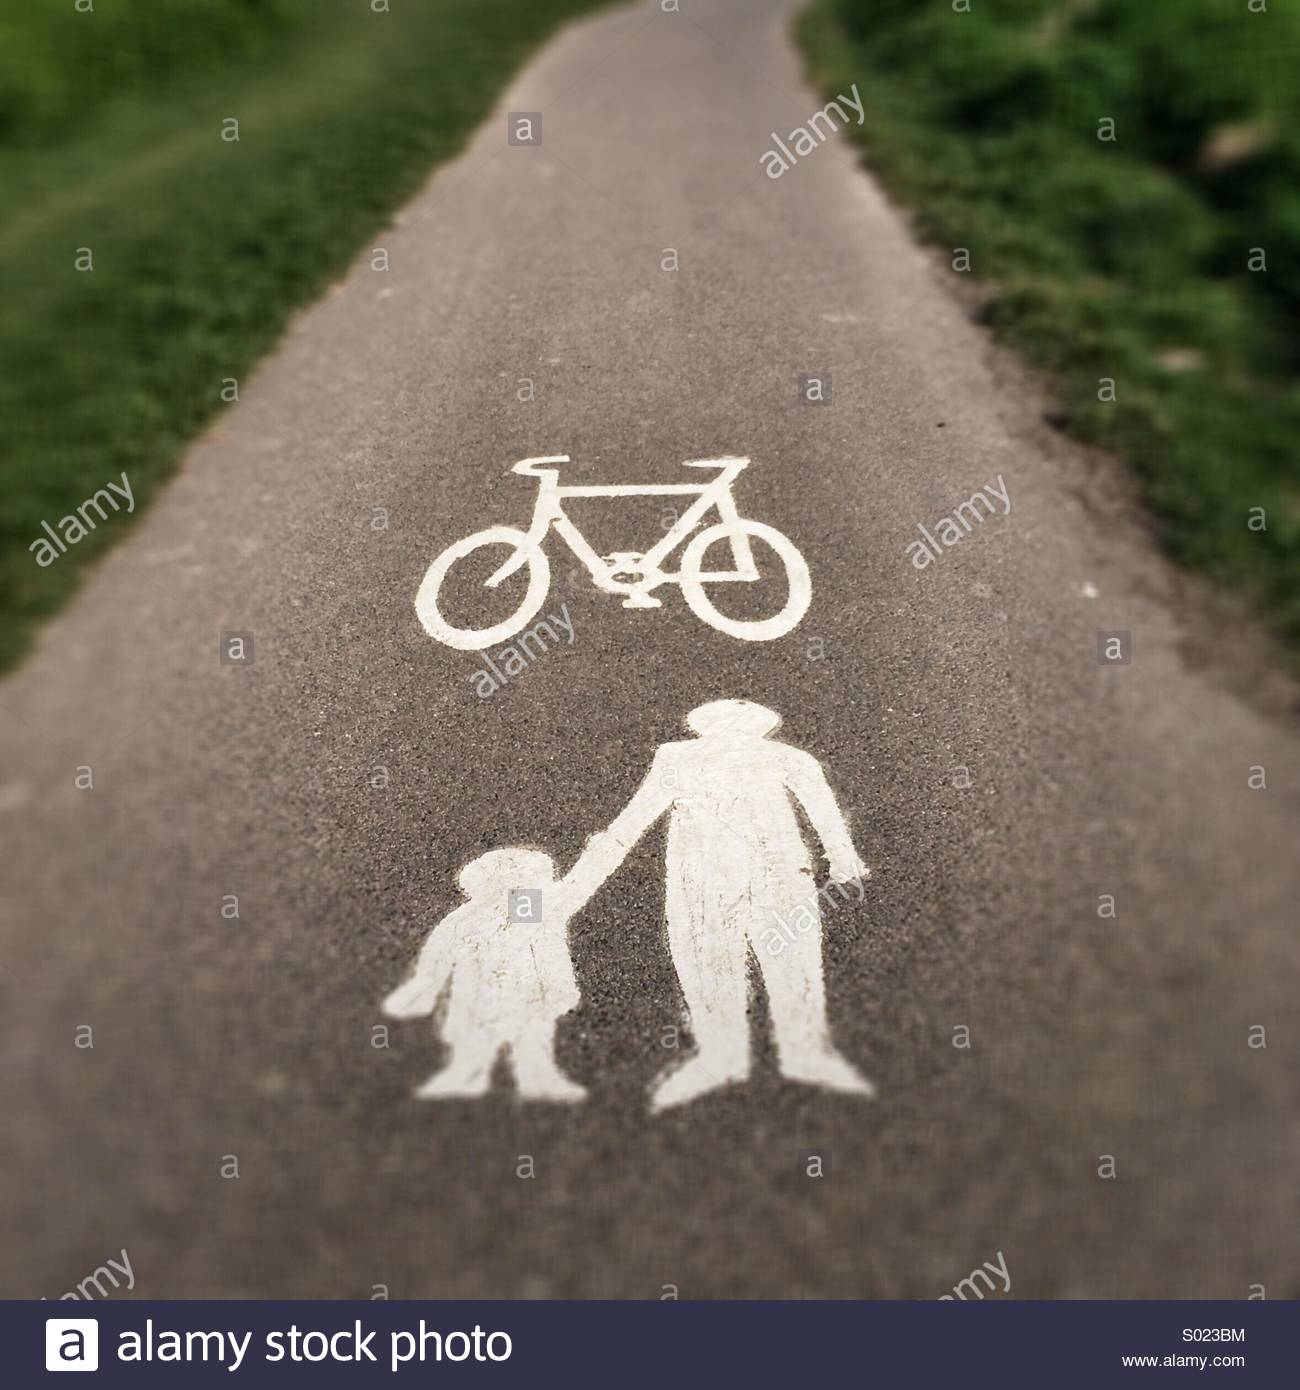 Cycling & Walking Path with adult & Child Symbols - Stock Image